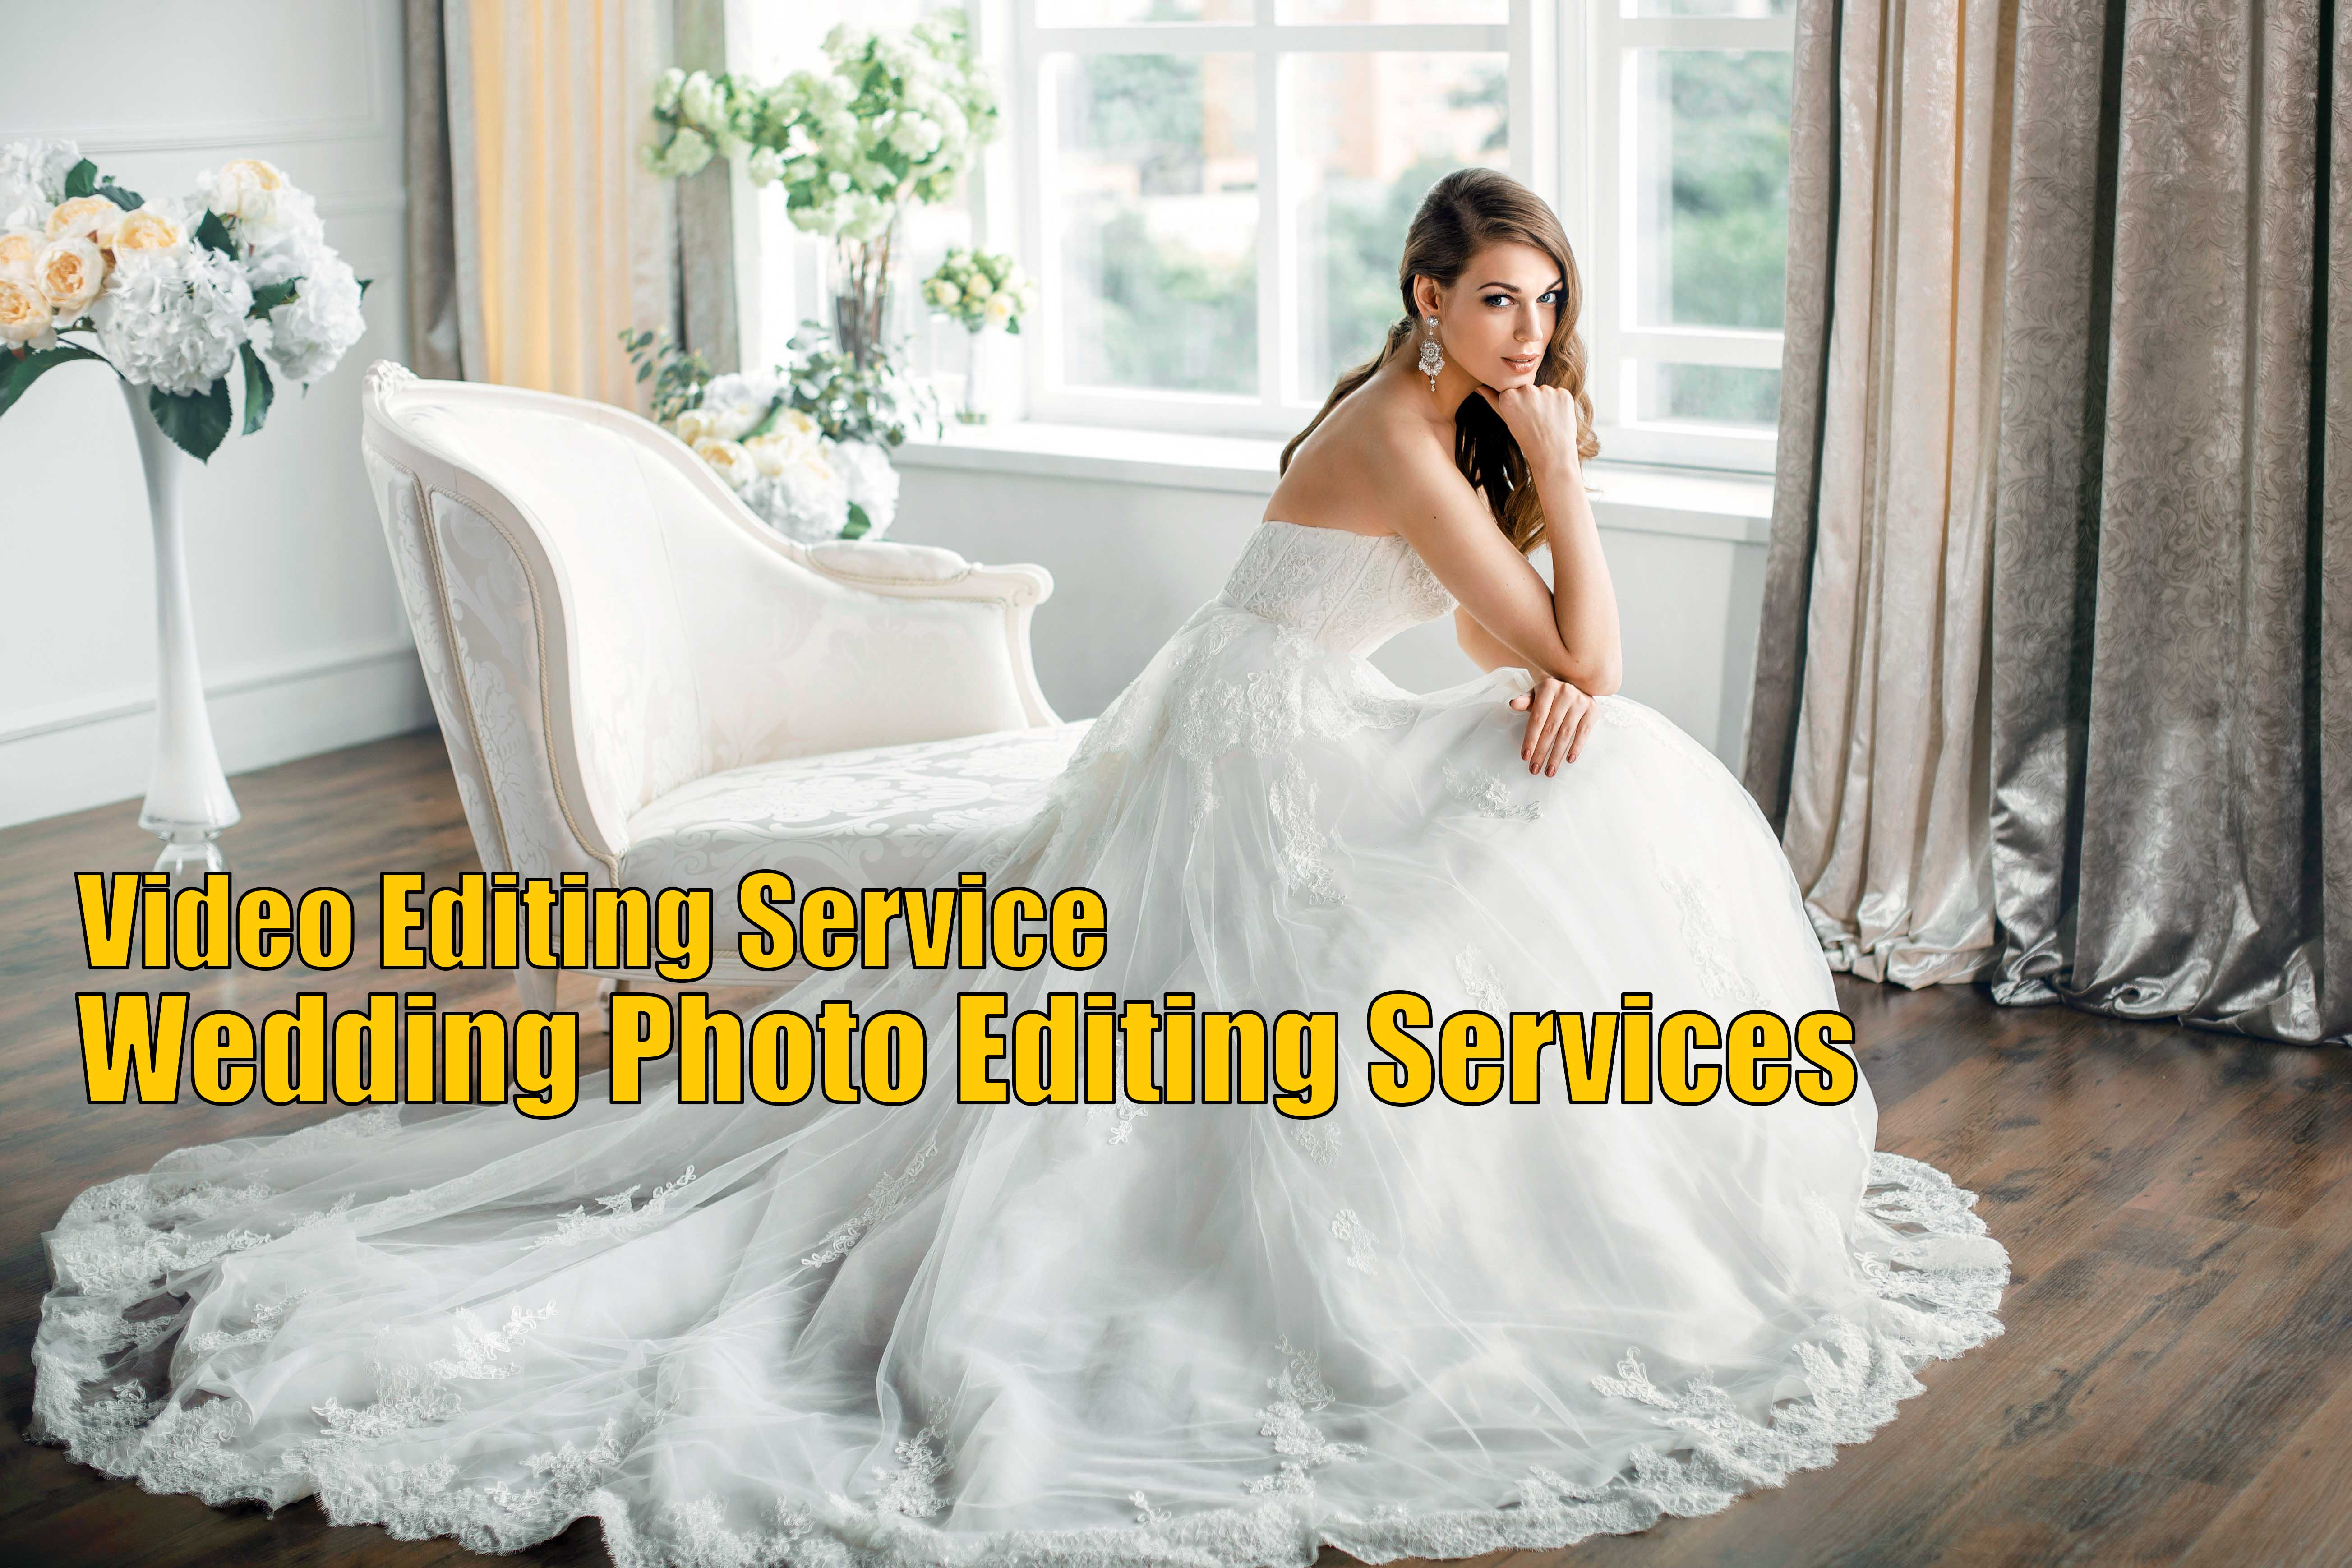 Outsource photo editing services in India - Eagle Outsourcing Service